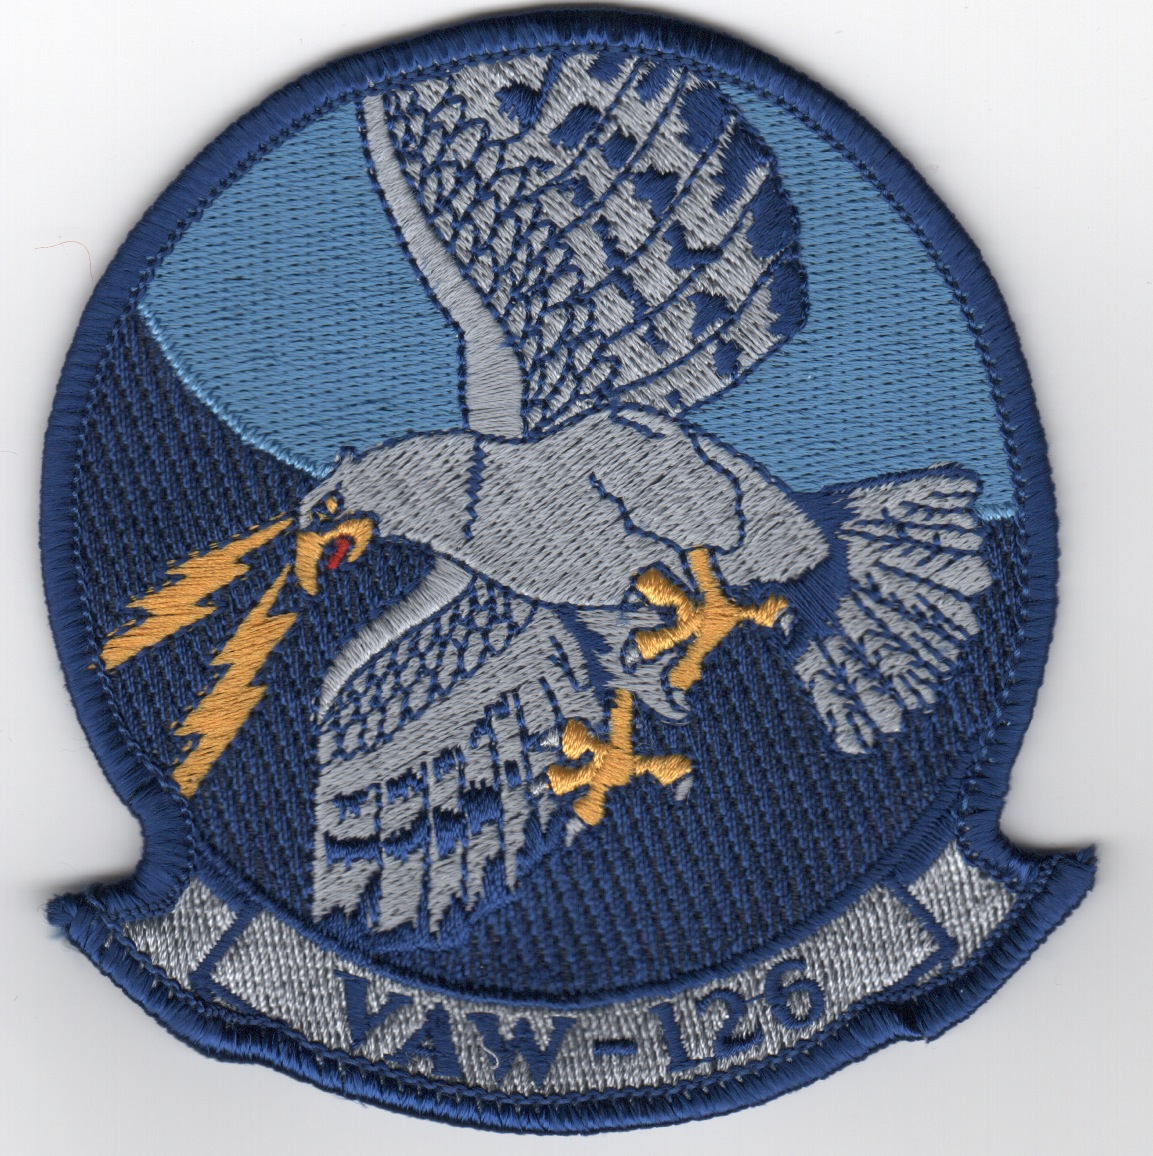 VAW-126 Squadron Patch (Blue Border)